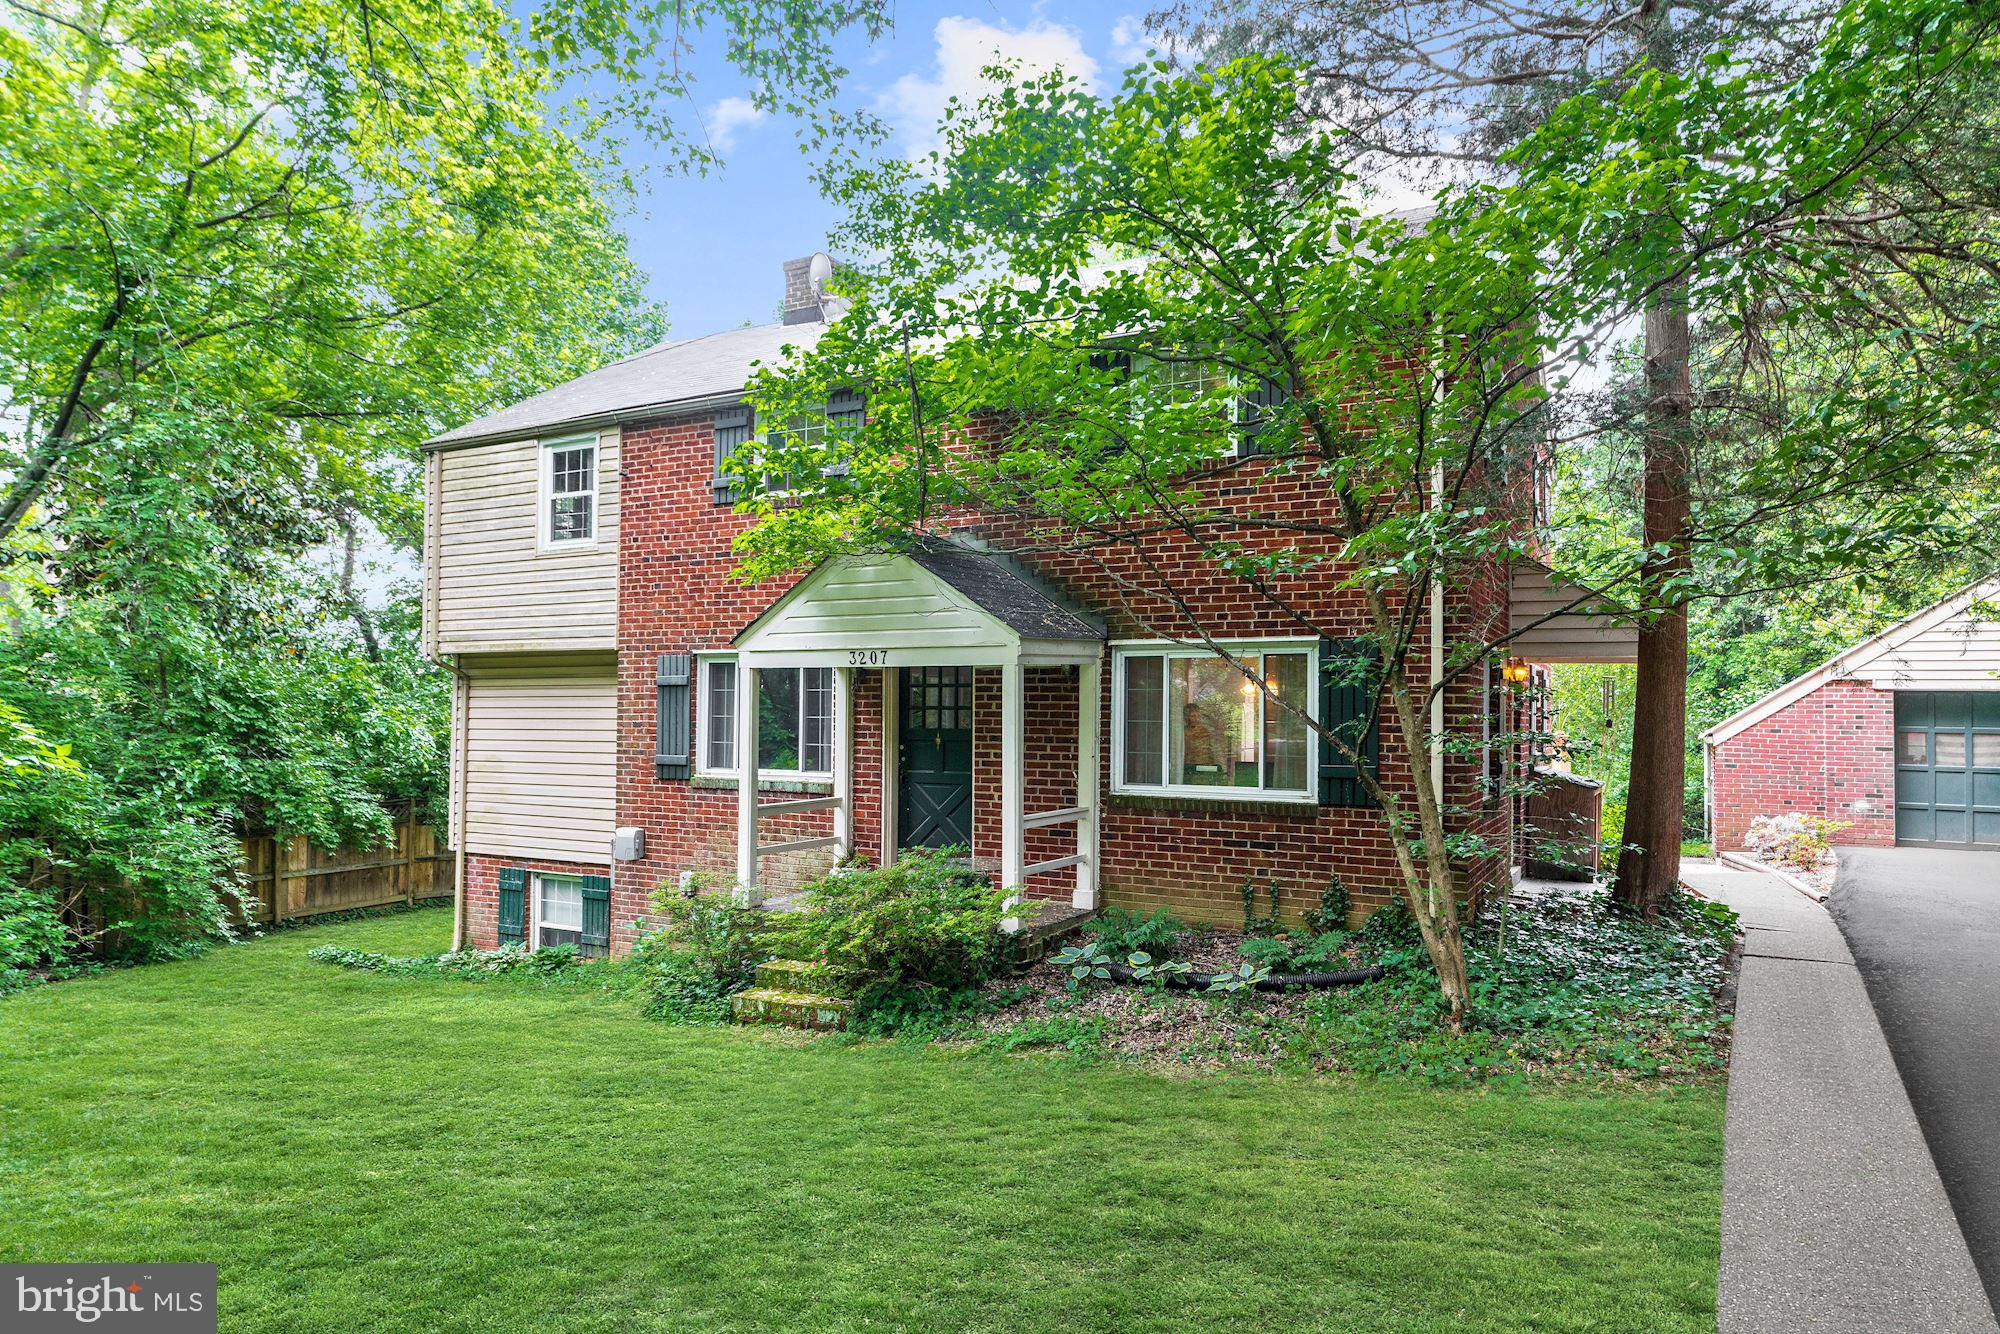 Your retreat just outside of the city, this beautiful colonial style home will be your private oasis! Minutes to shopping, restaurants, parks and metro stations you can't beat the location. Sitting on an oversized lot backing to trees, enjoy dining al fresco on the large and sunny back deck. Curl up with a good book in front of the fireplace in the living room or have your morning coffee in the bright and inviting sunroom. Upstairs the master bedroom has wooded views and a private sitting room with walk in closet. This home has incredible potential and ready for you!